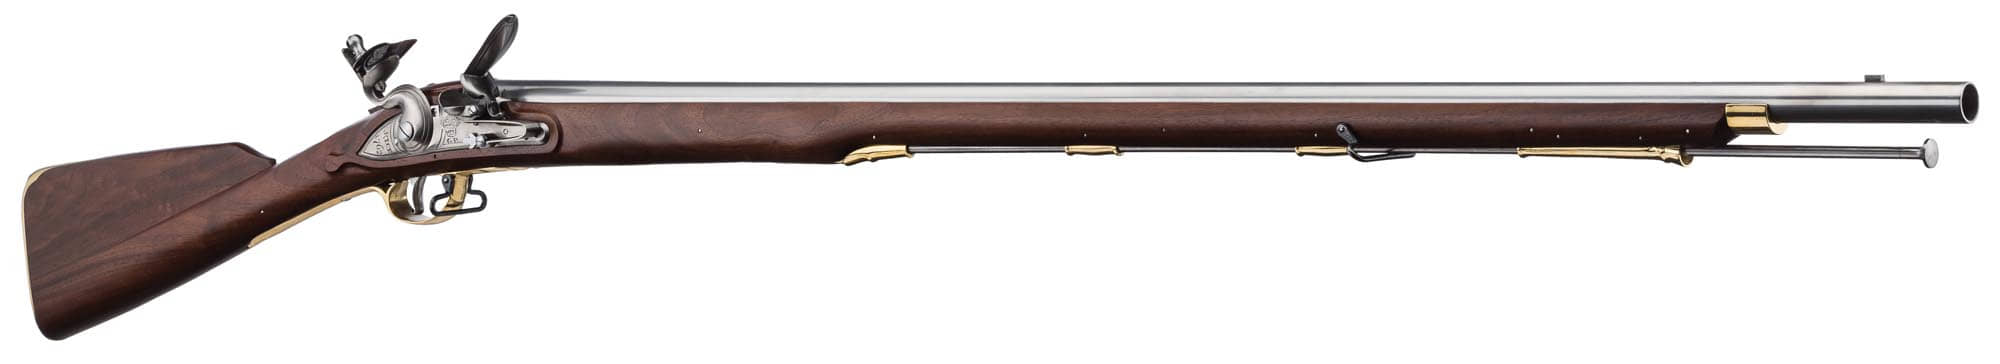 PD1050-3-FUSIL BROWN BESS PEDERSOLI Cal .75 - RE1477